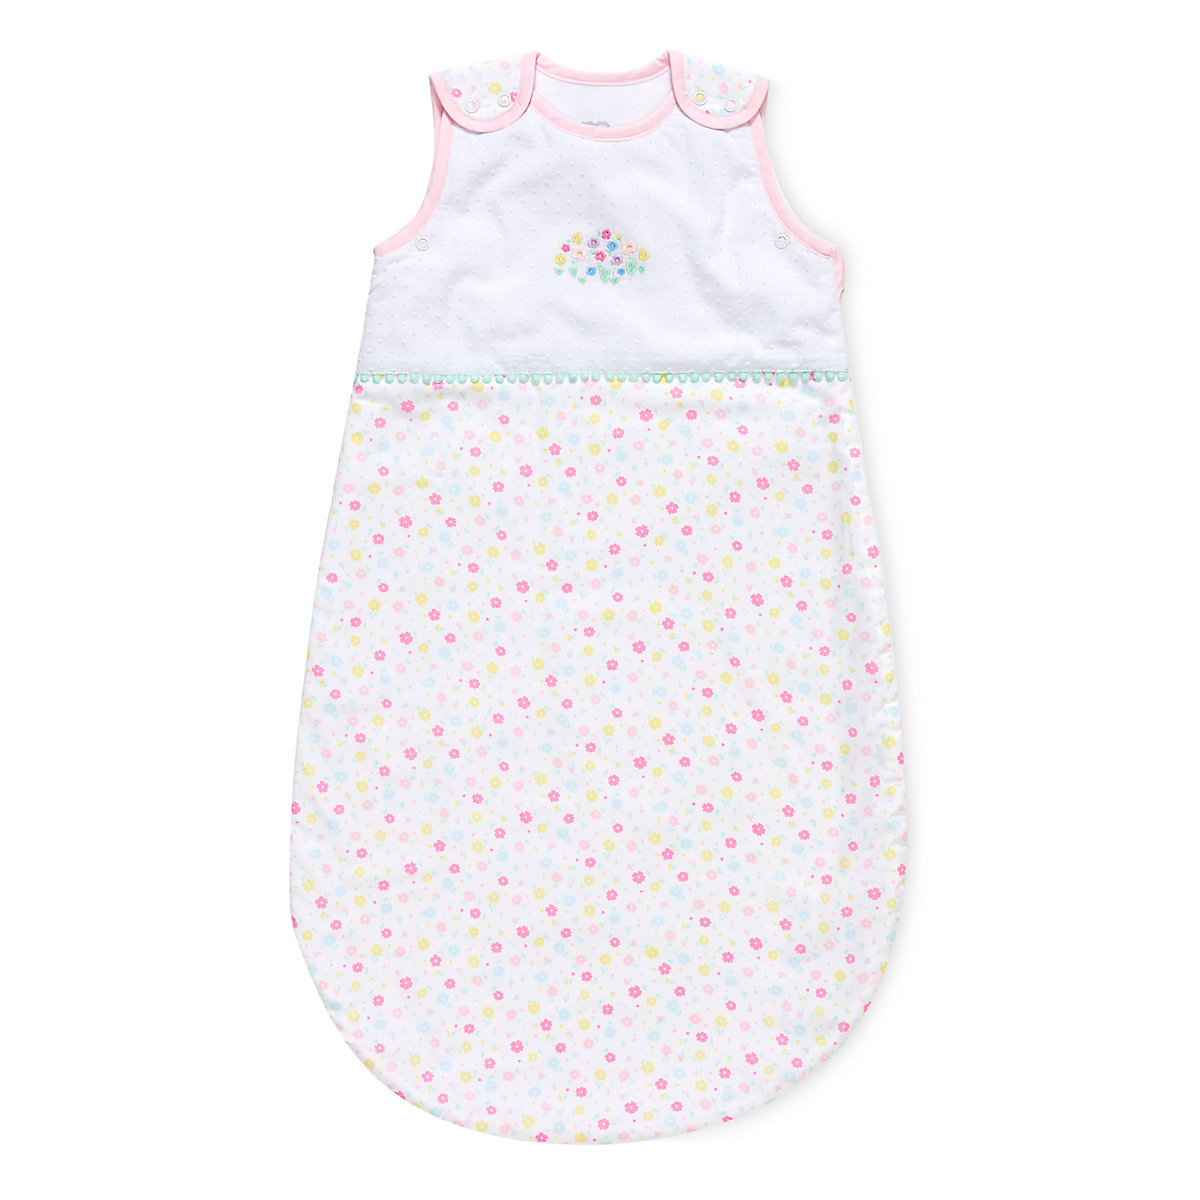 confetti party 0-6 months snoozie sleep bag - 2.5 tog